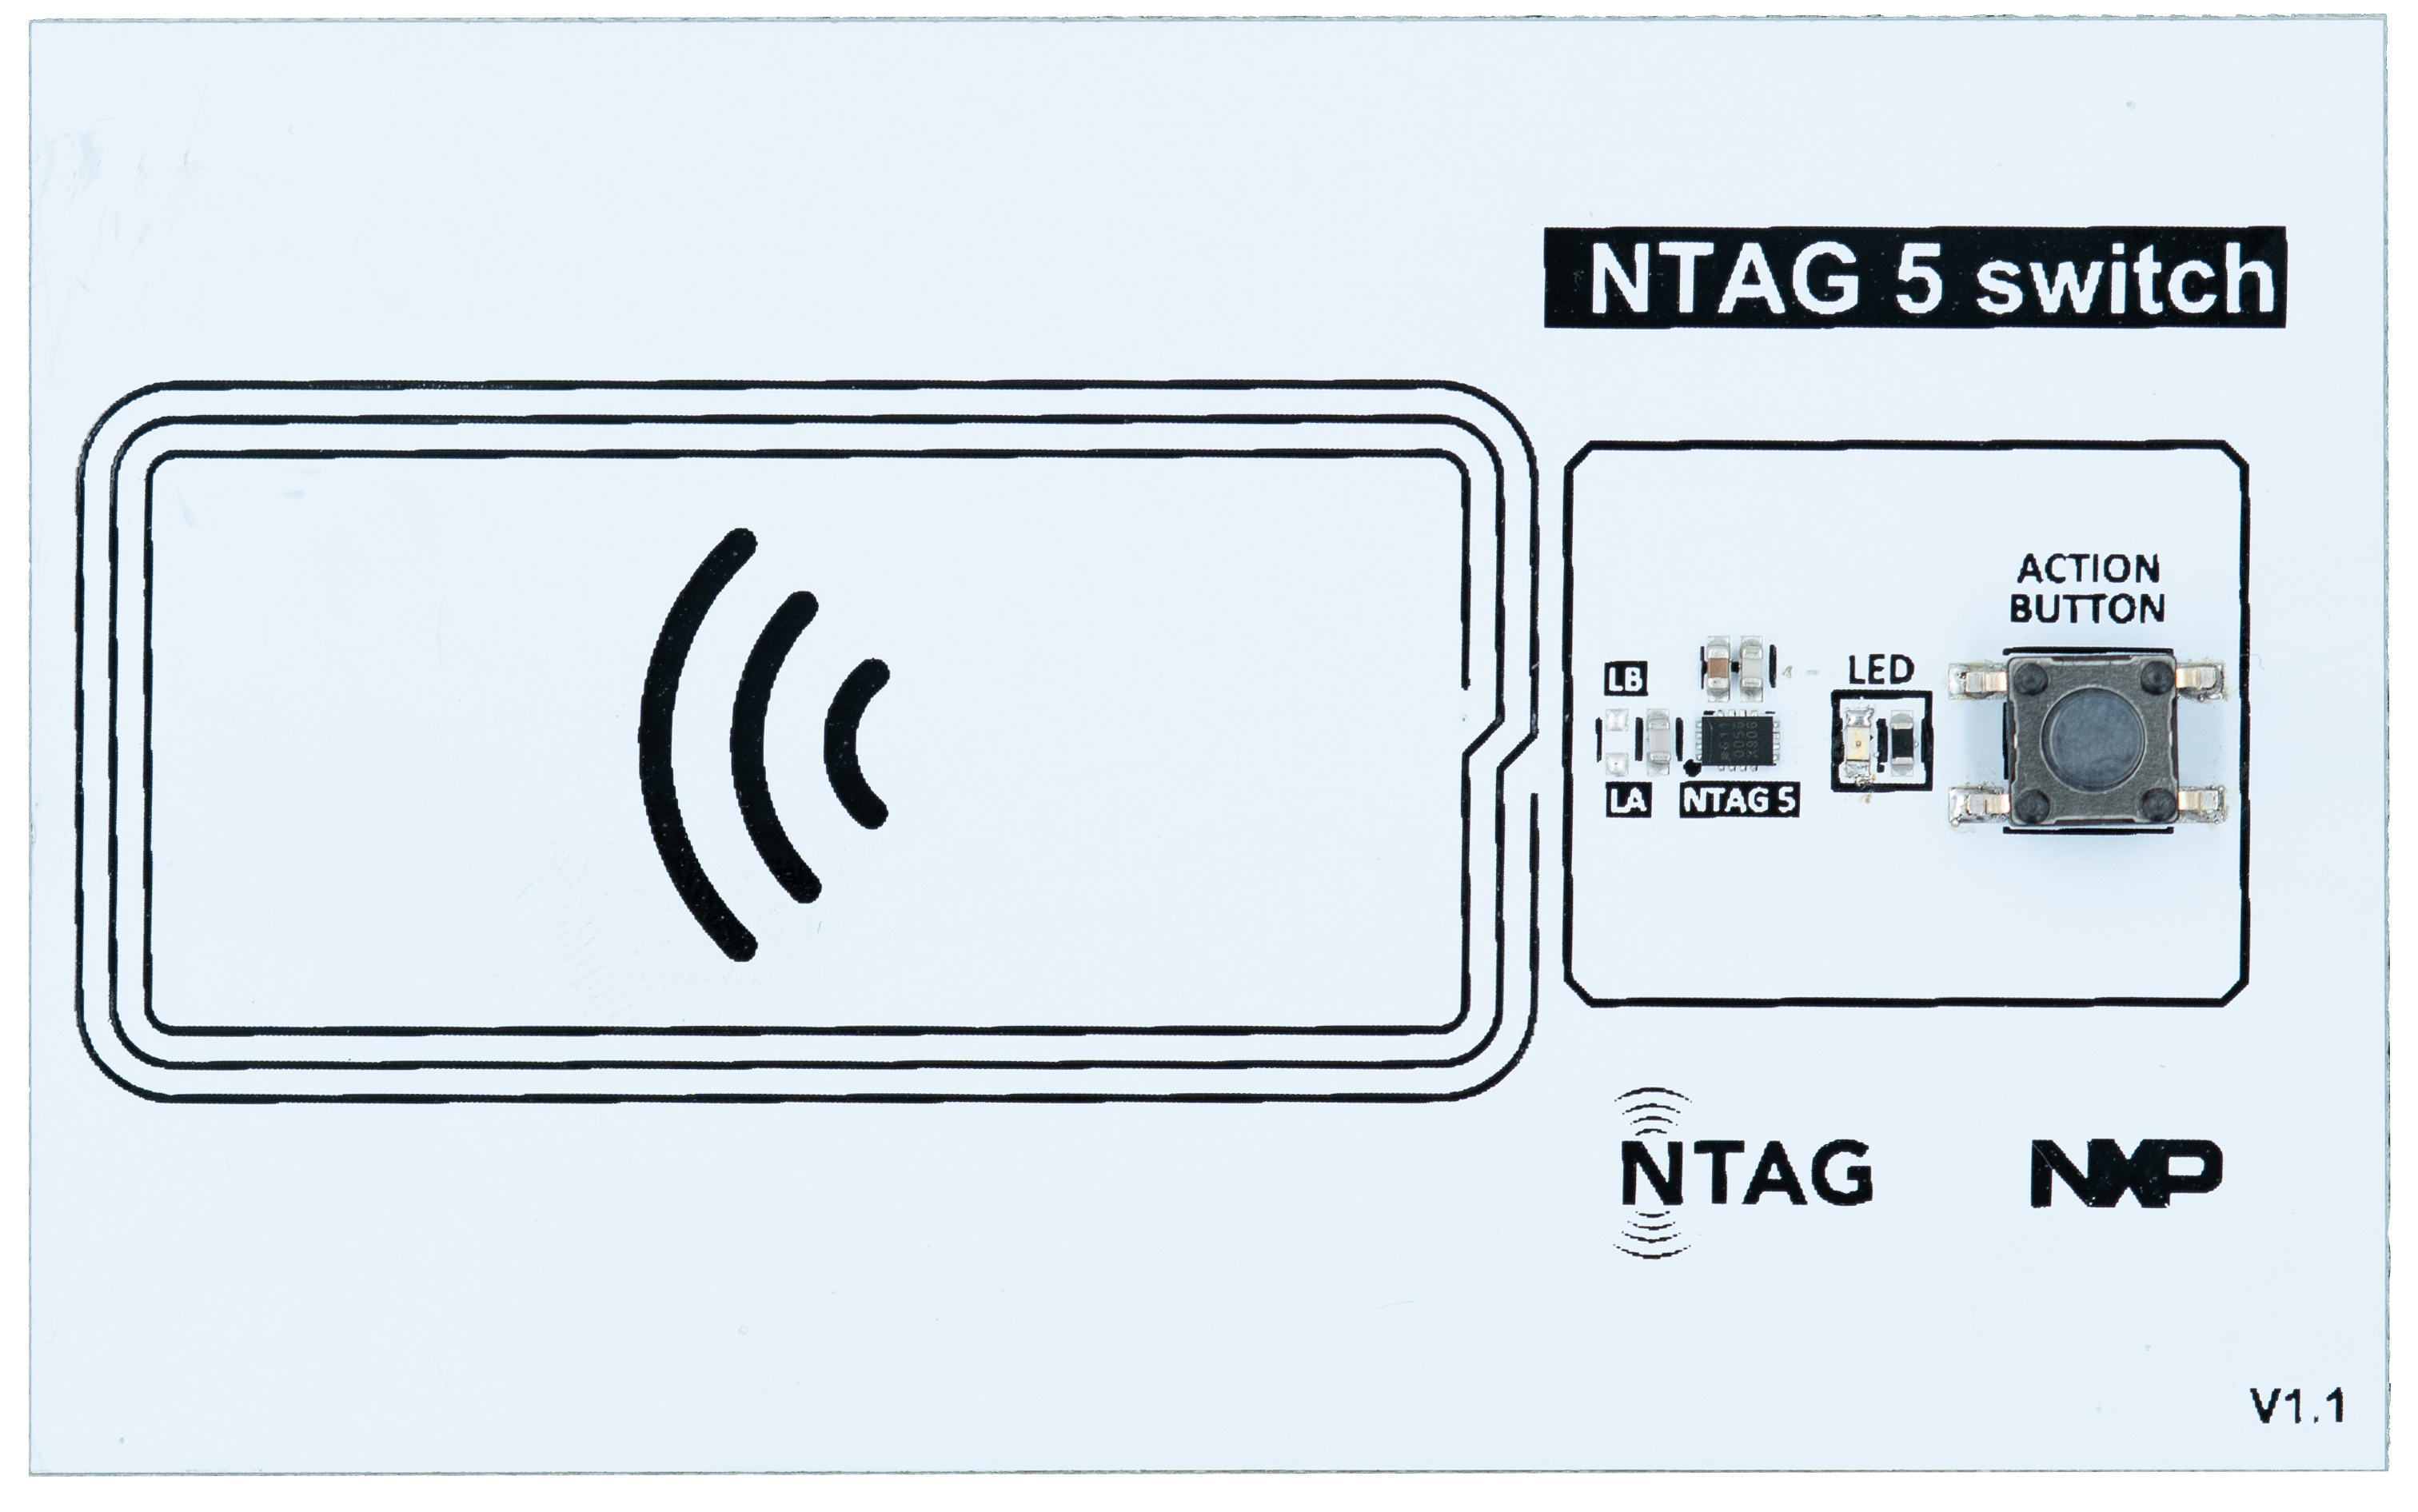 NTAG 5 switch demo board